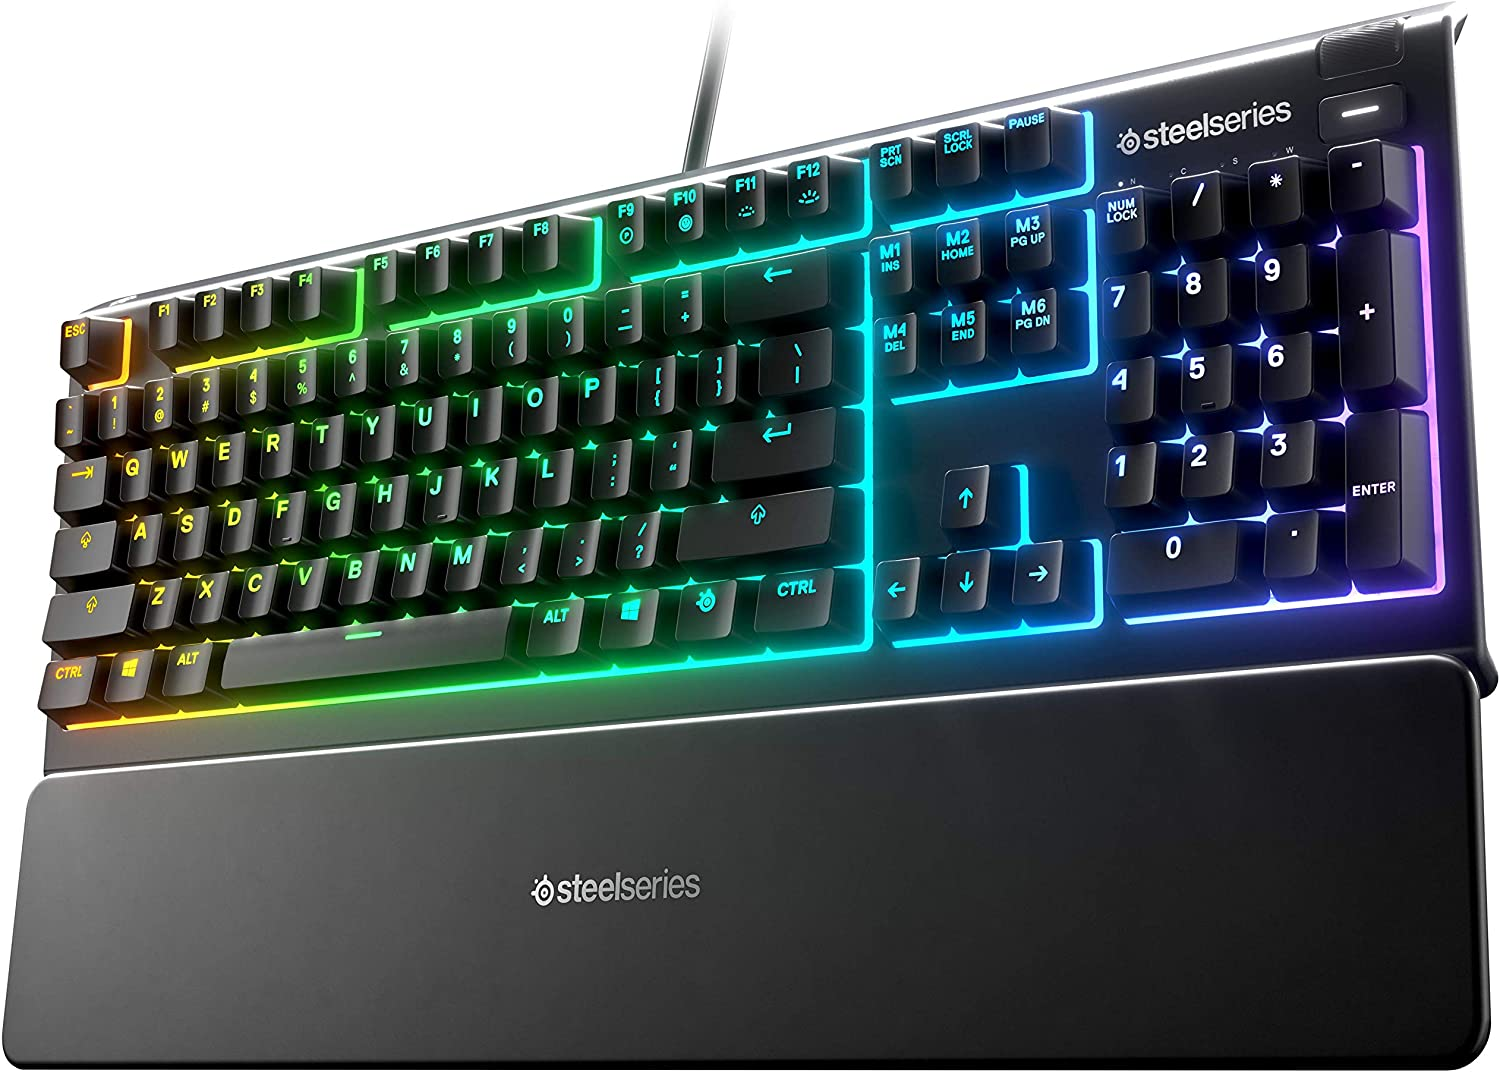 Apex 5 Hybrid Mechanical Gaming Keyboard – Per-Key RGB Illumination – Aircraft Grade Aluminum Alloy Frame – OLED Smart Display (Hybrid Blue Switch)